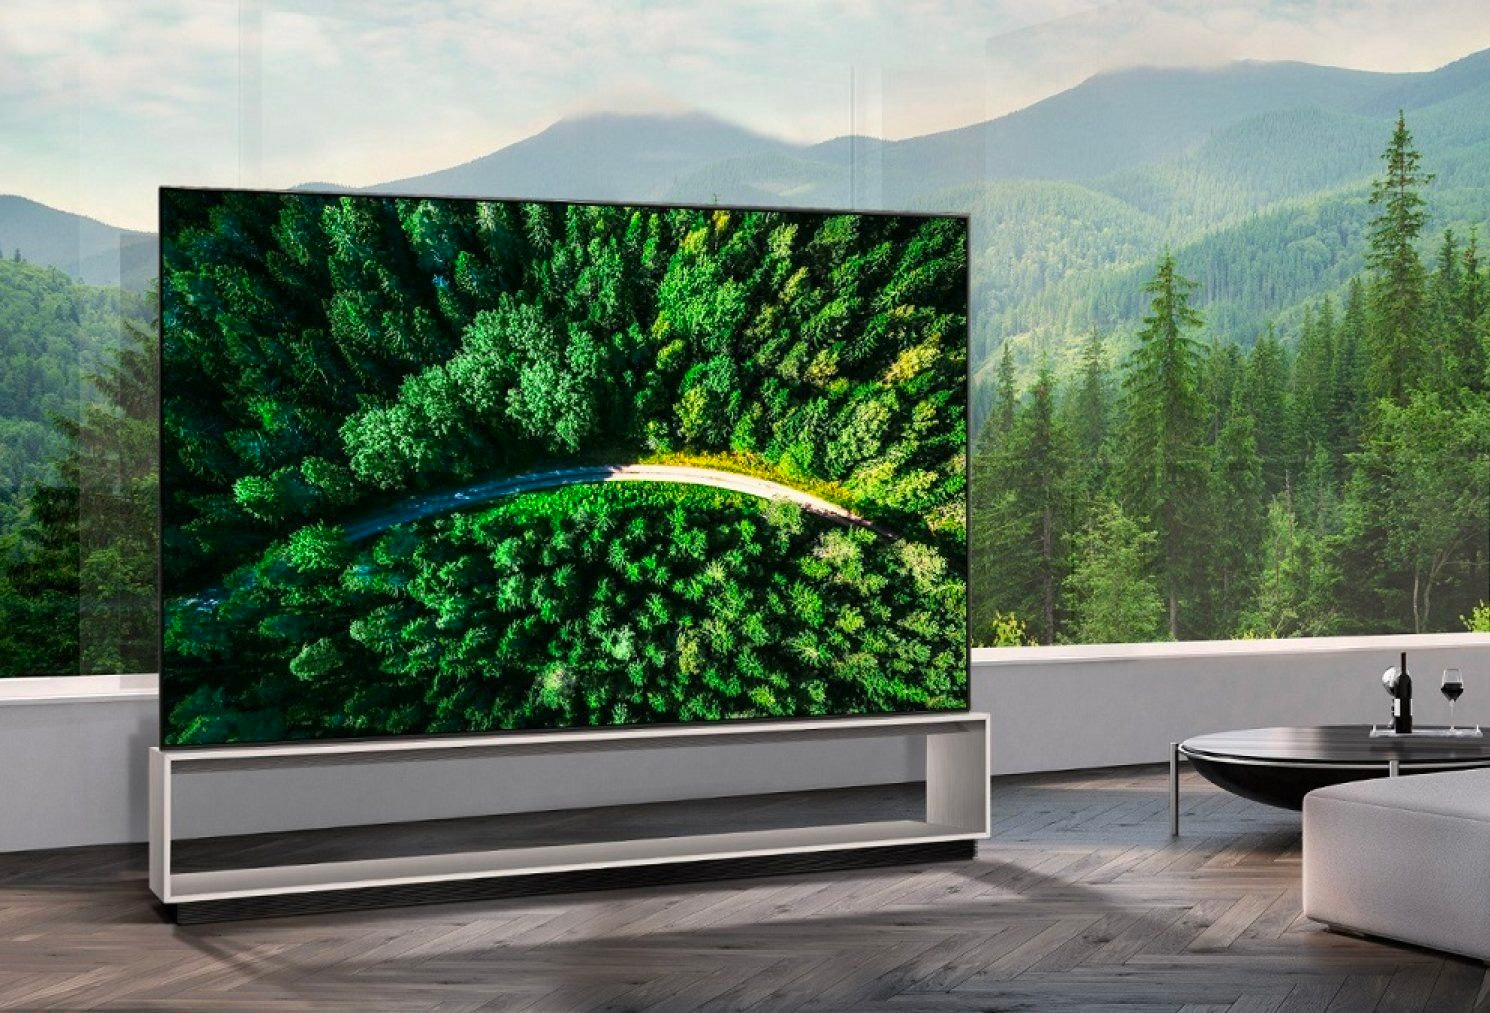 Go Huge with LG's 88-Inch 8K OLED TV at werd.com